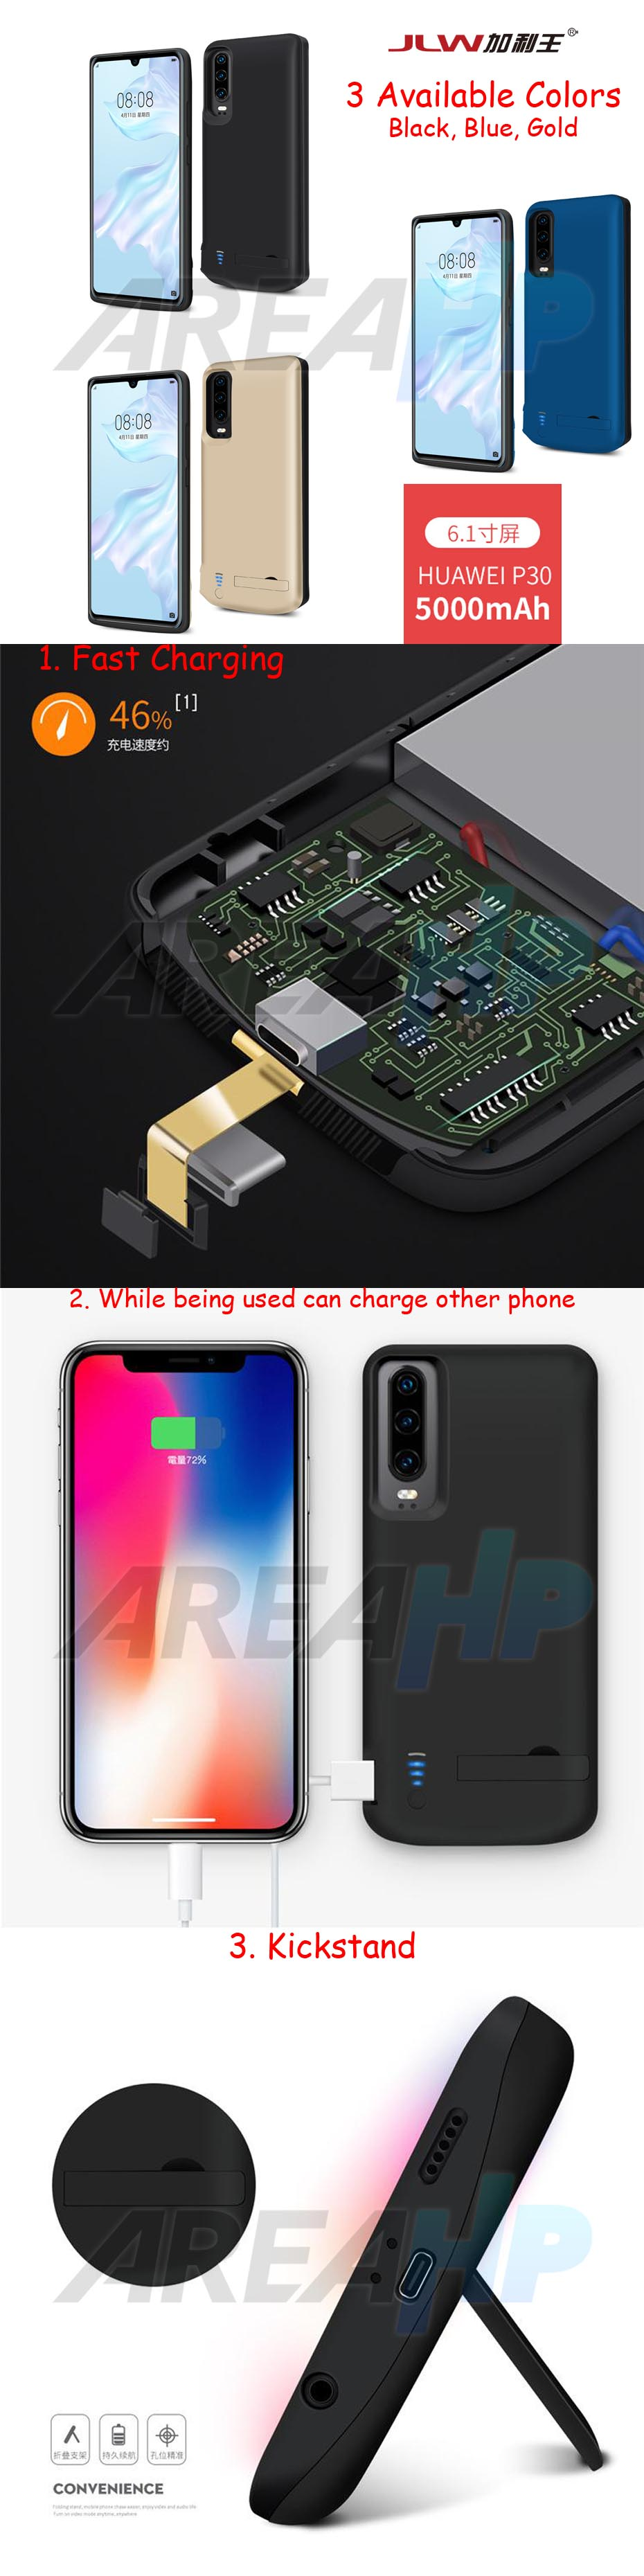 Power Case 5000mAh For Huawei P30 Overview